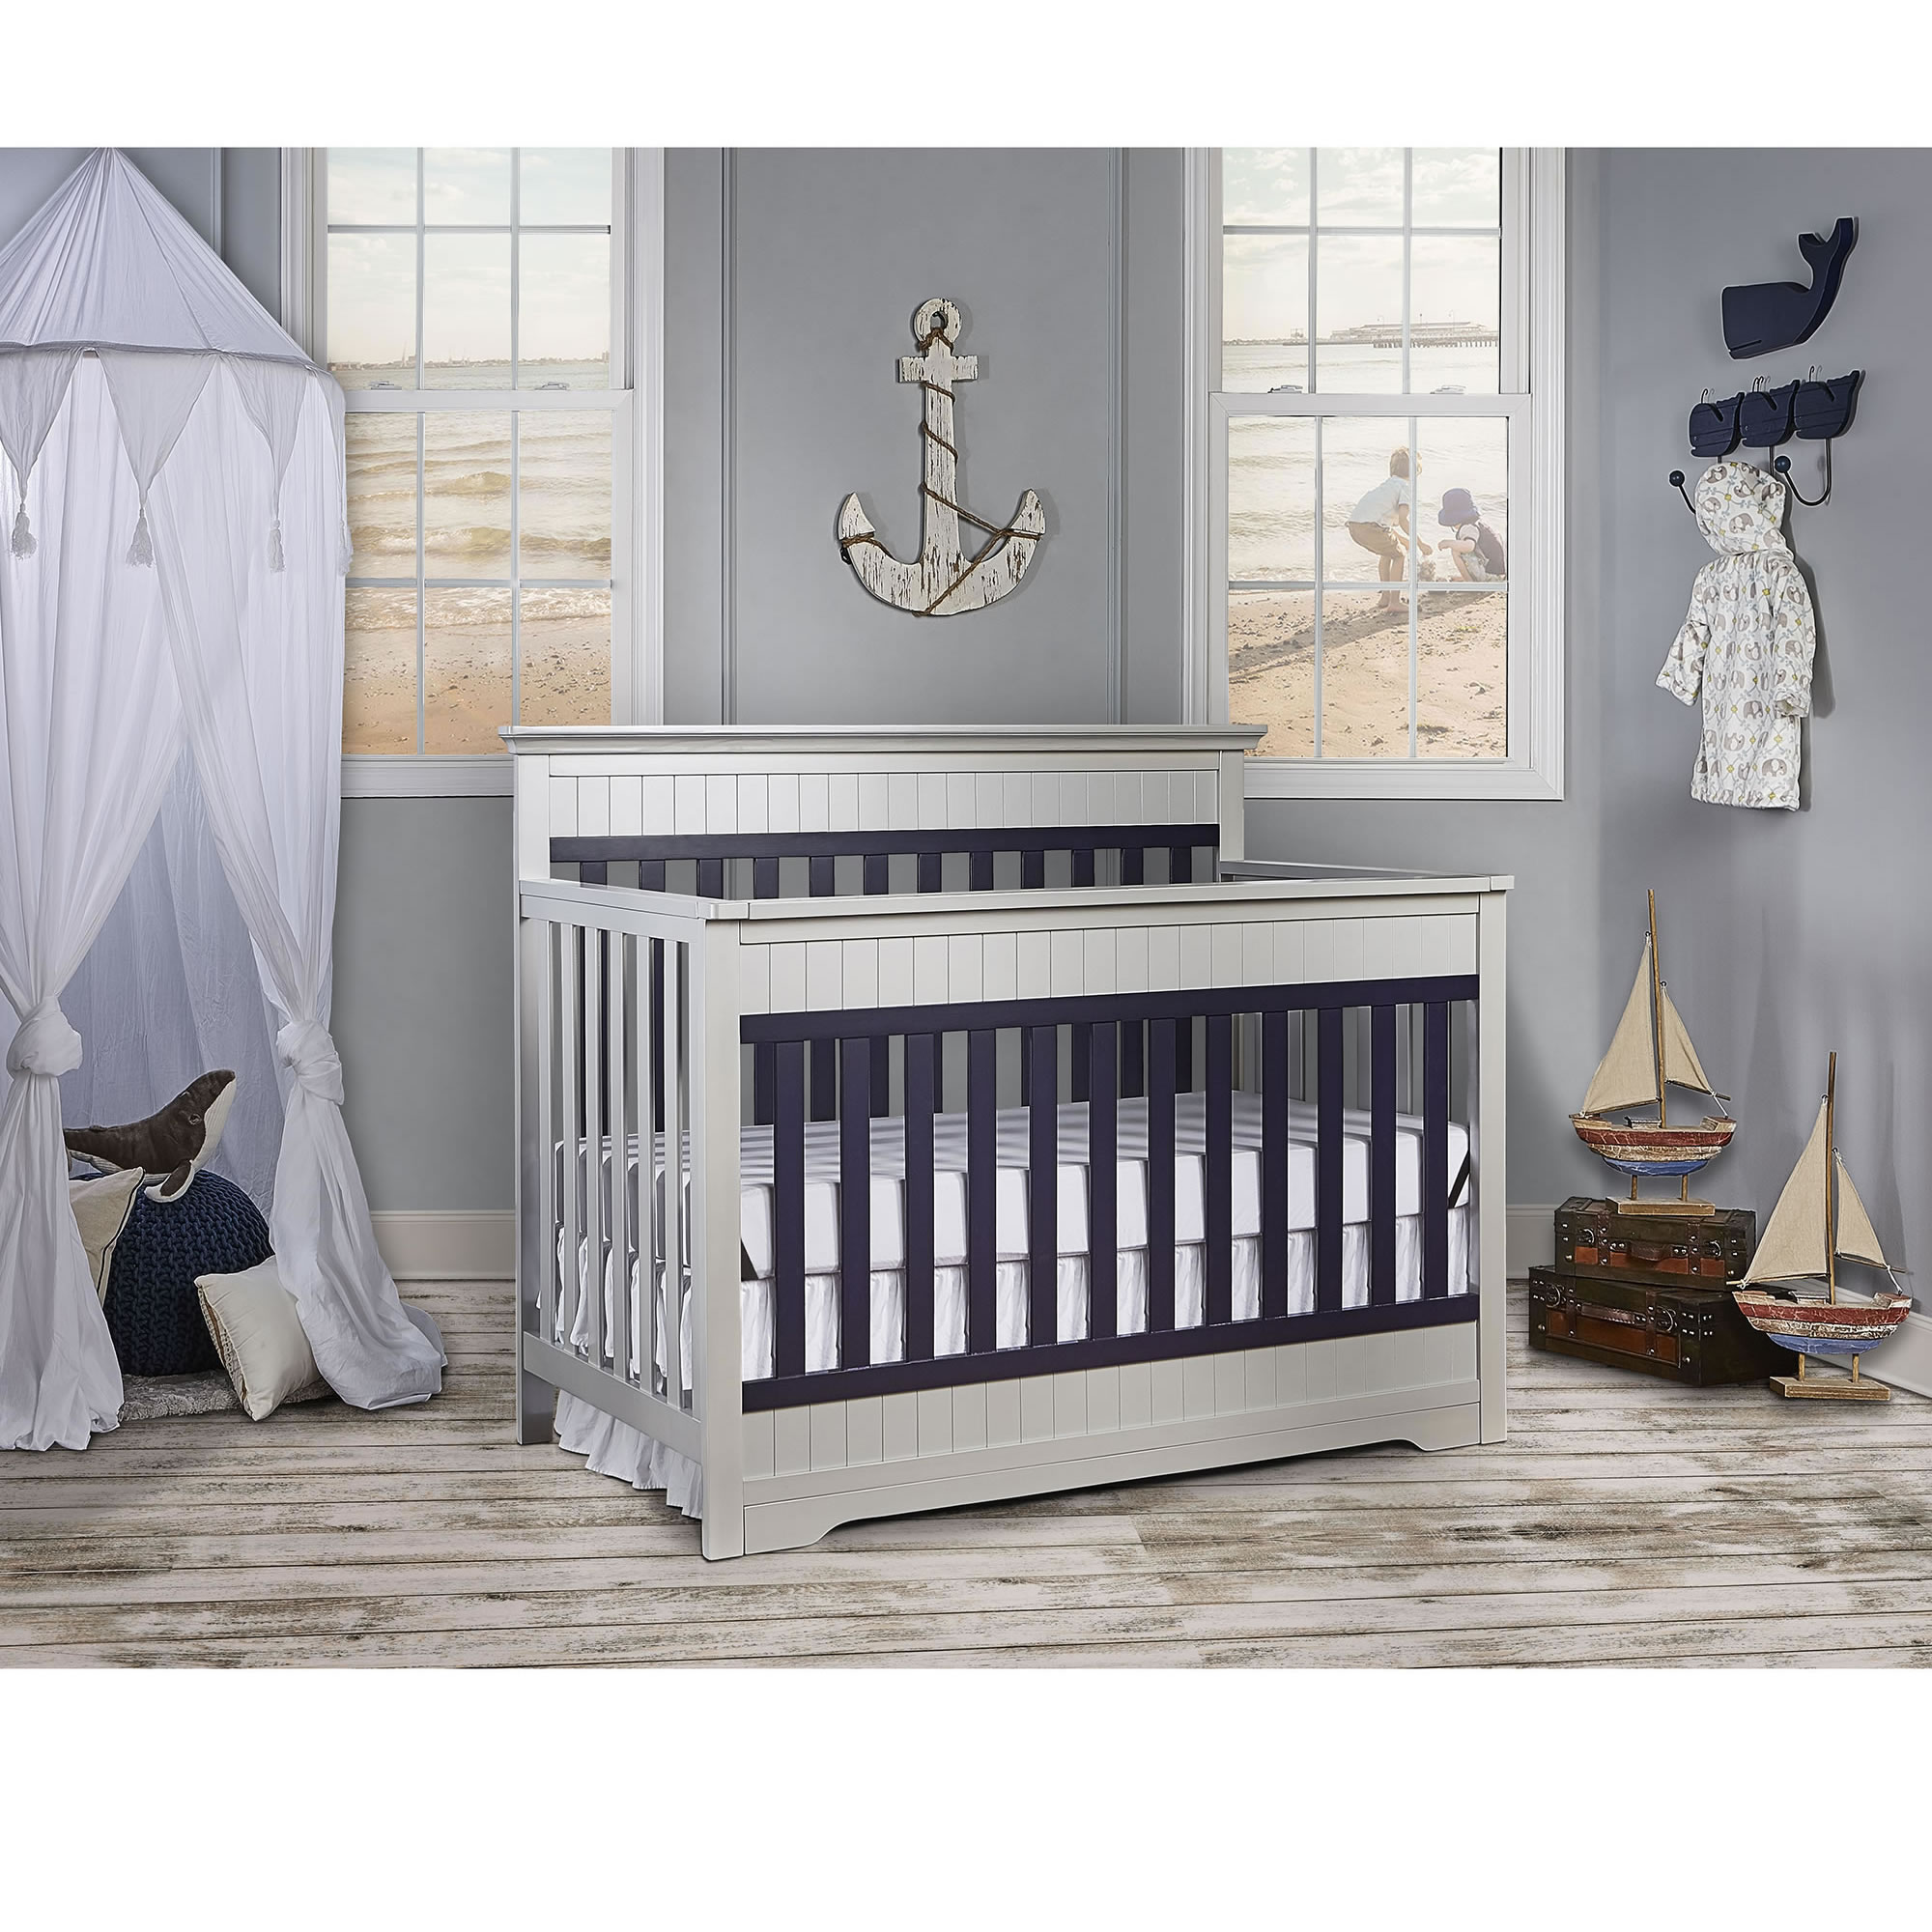 761_NS_Chesapeake-5-in-1-Convertible-Crib